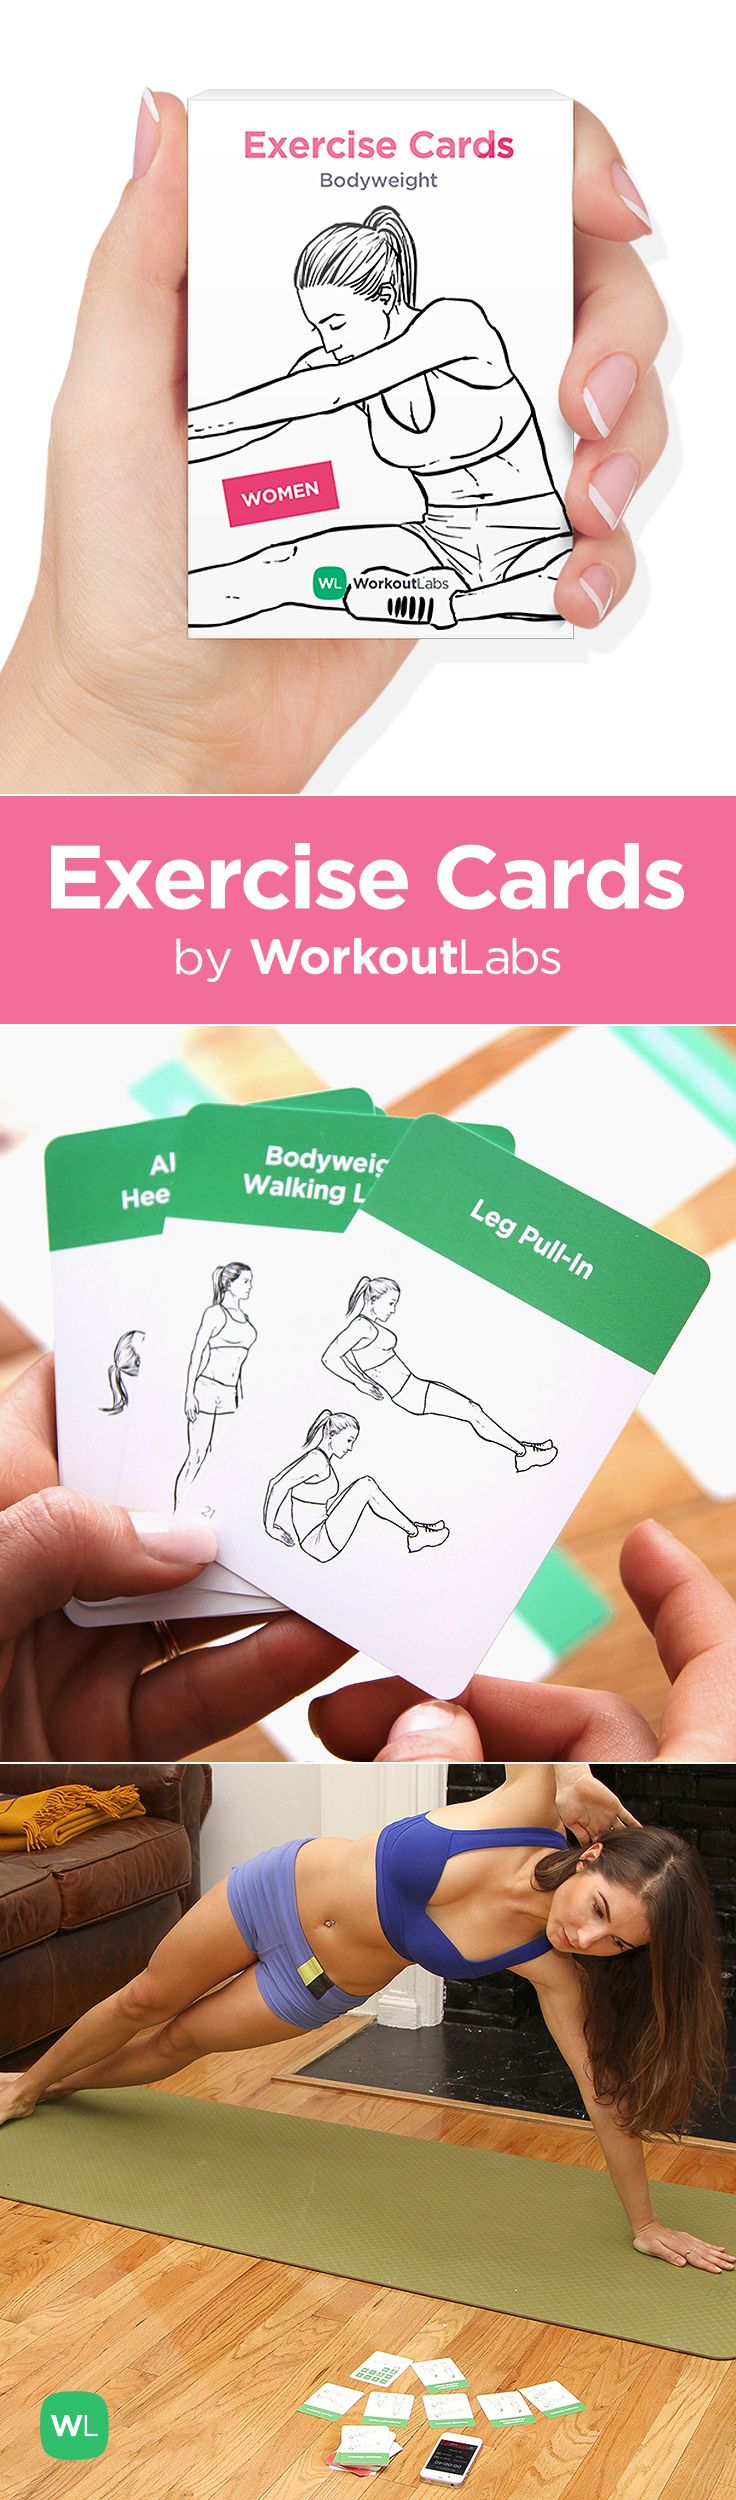 Exercise Cards By Workoutlabs Work Out Anywhere Anytime Card Workout Exercise I Work Out